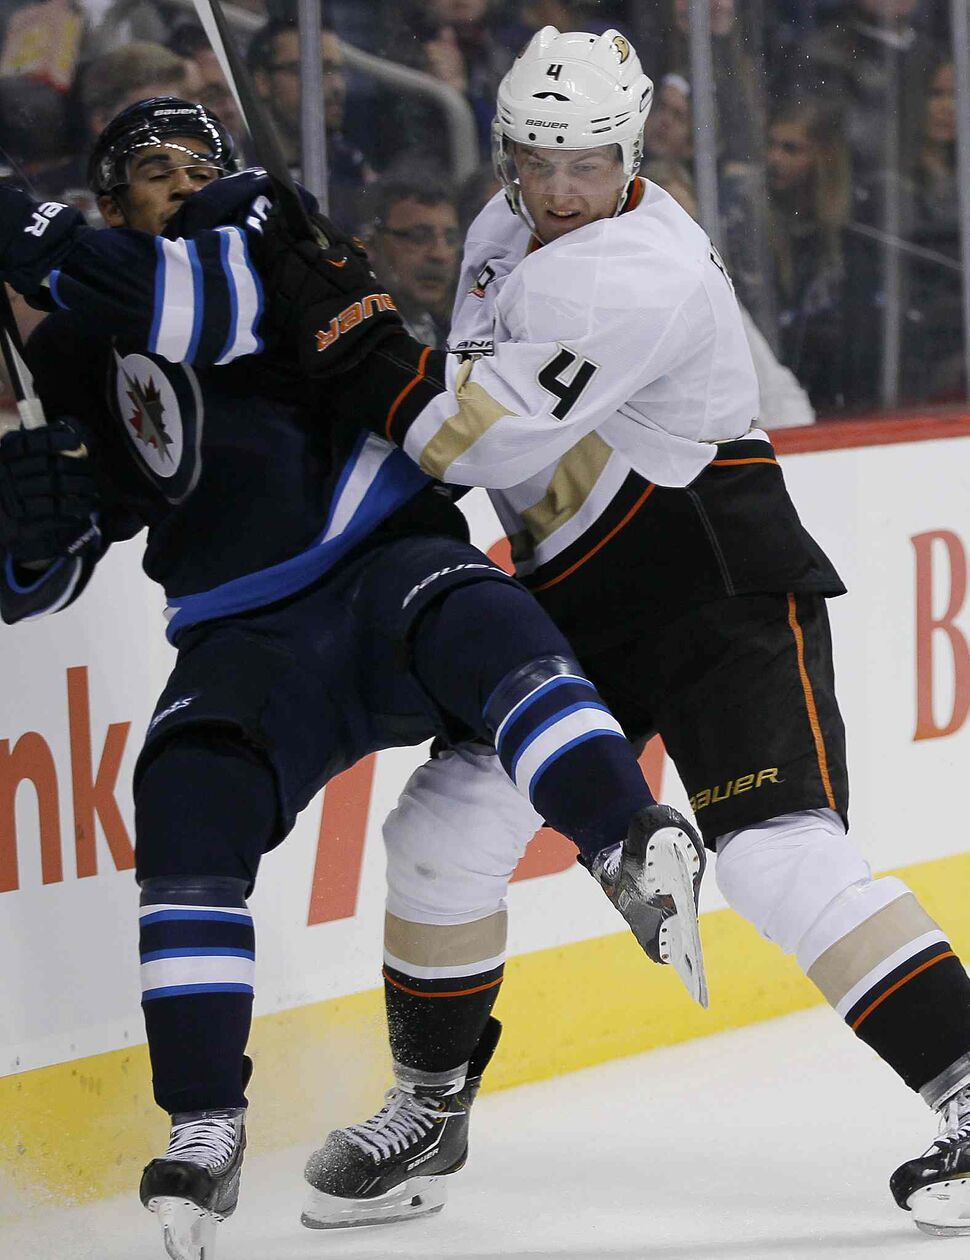 Anaheim Ducks' Cam Fowler takes out Winnipeg Jets' Evander Kane during the second period. (JOHN WOODS / WINNIPEG FREE PRESS)